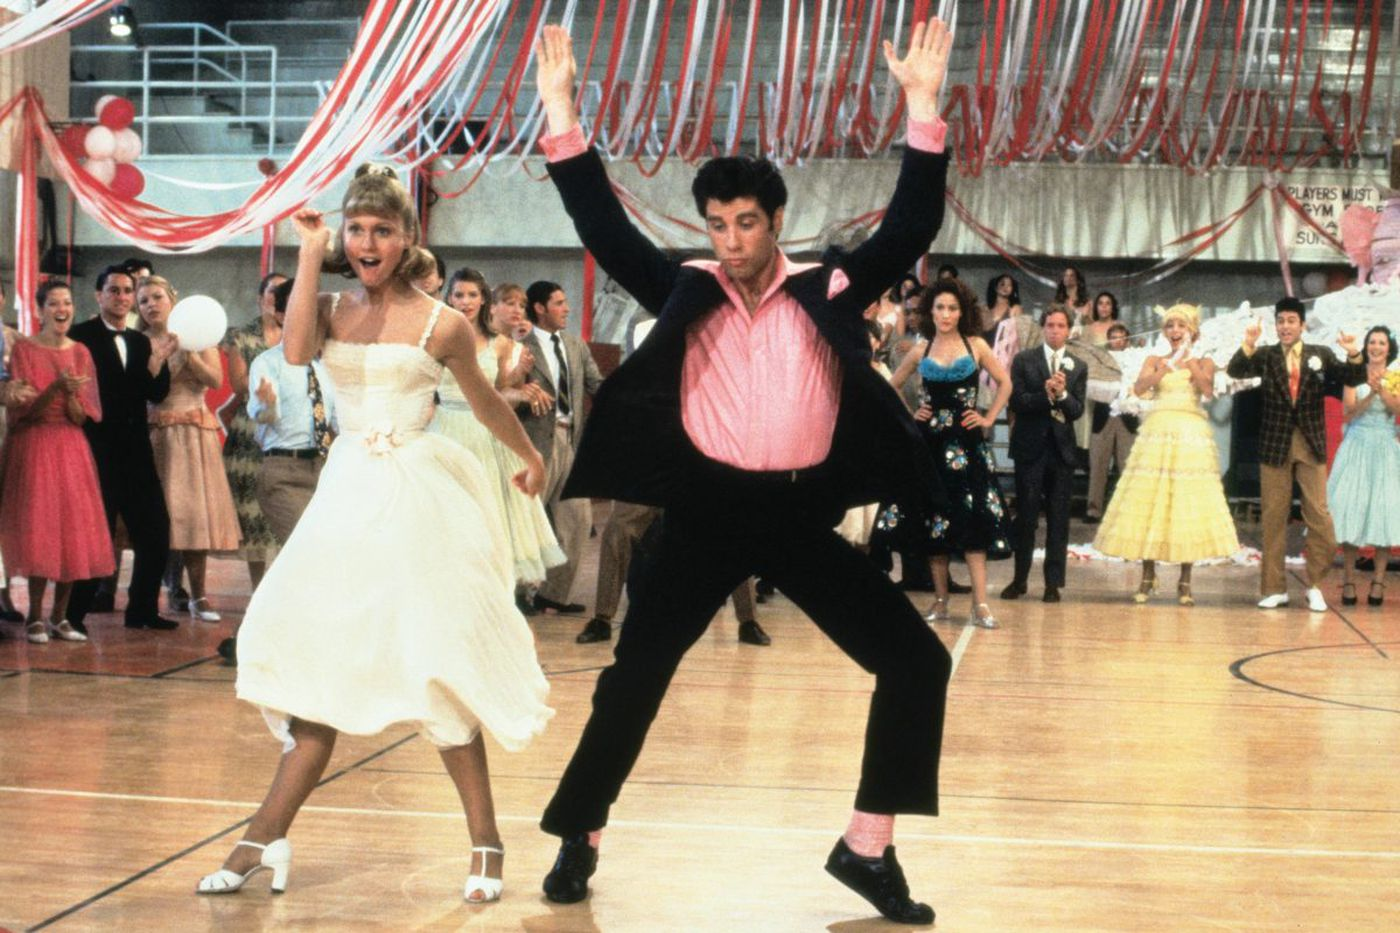 'Grease,' inspired by Radnor High School, returns to theaters for 40th anniversary